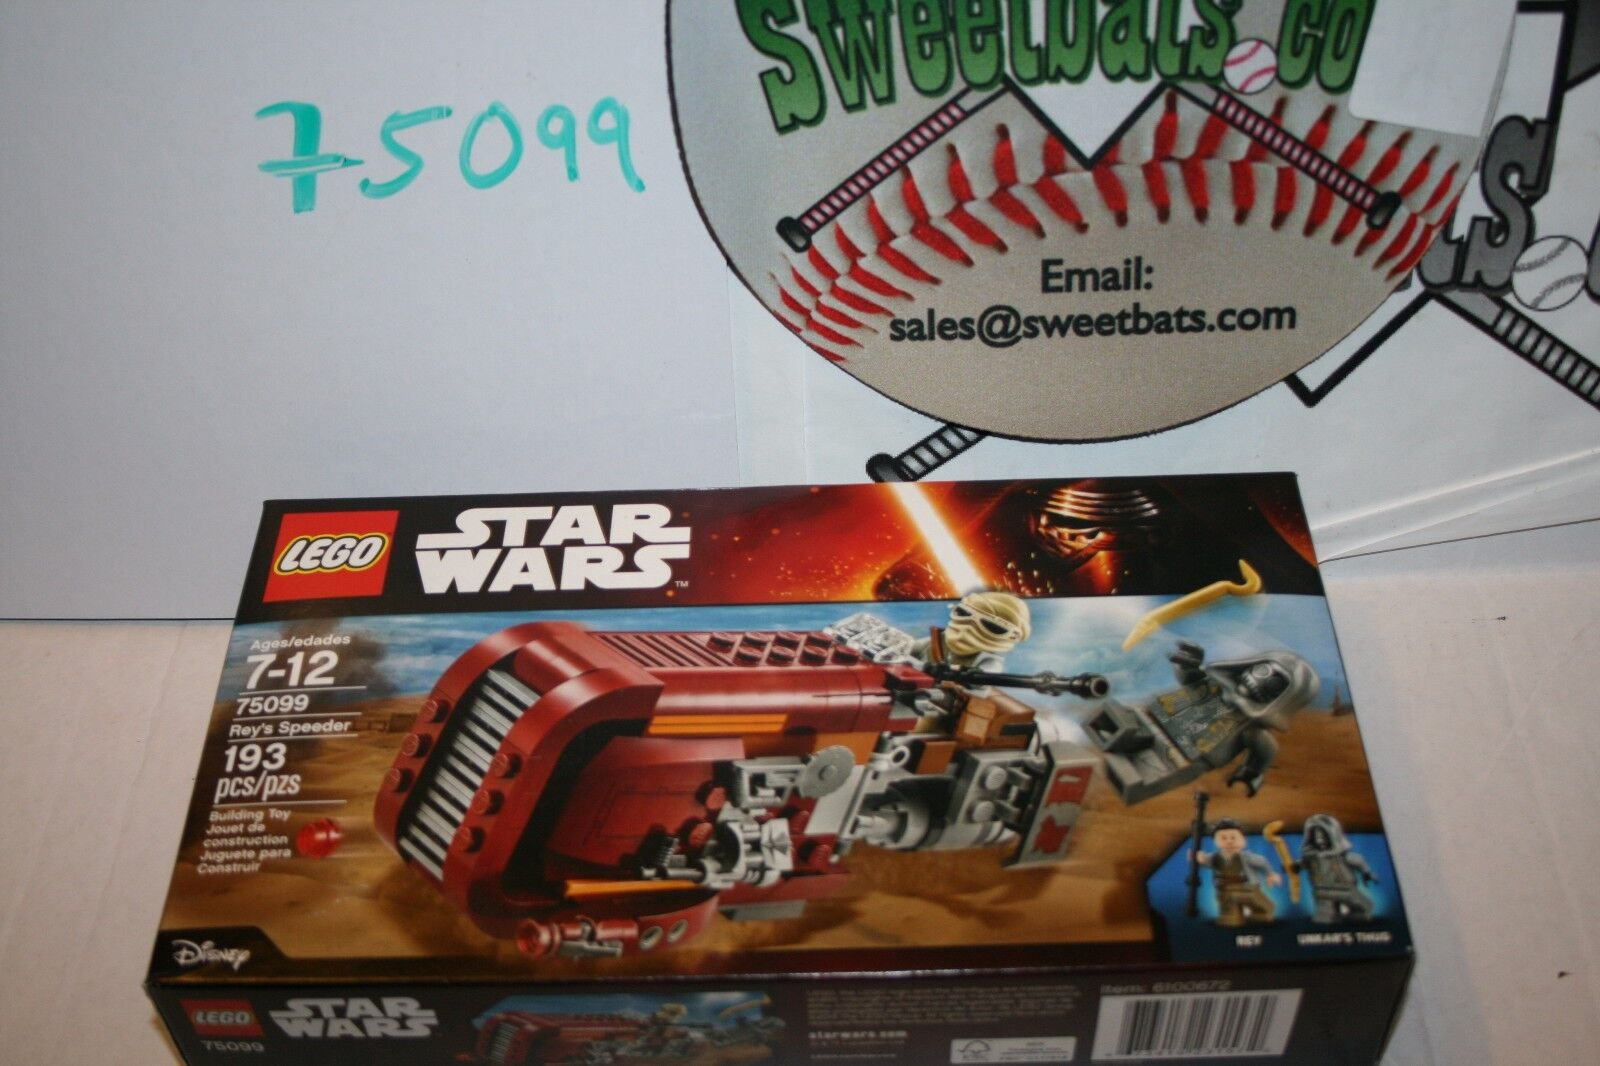 75099 Lego Star Wars Rey Rey's Speeder New Sealed NIB 193 pcs Force Awakens